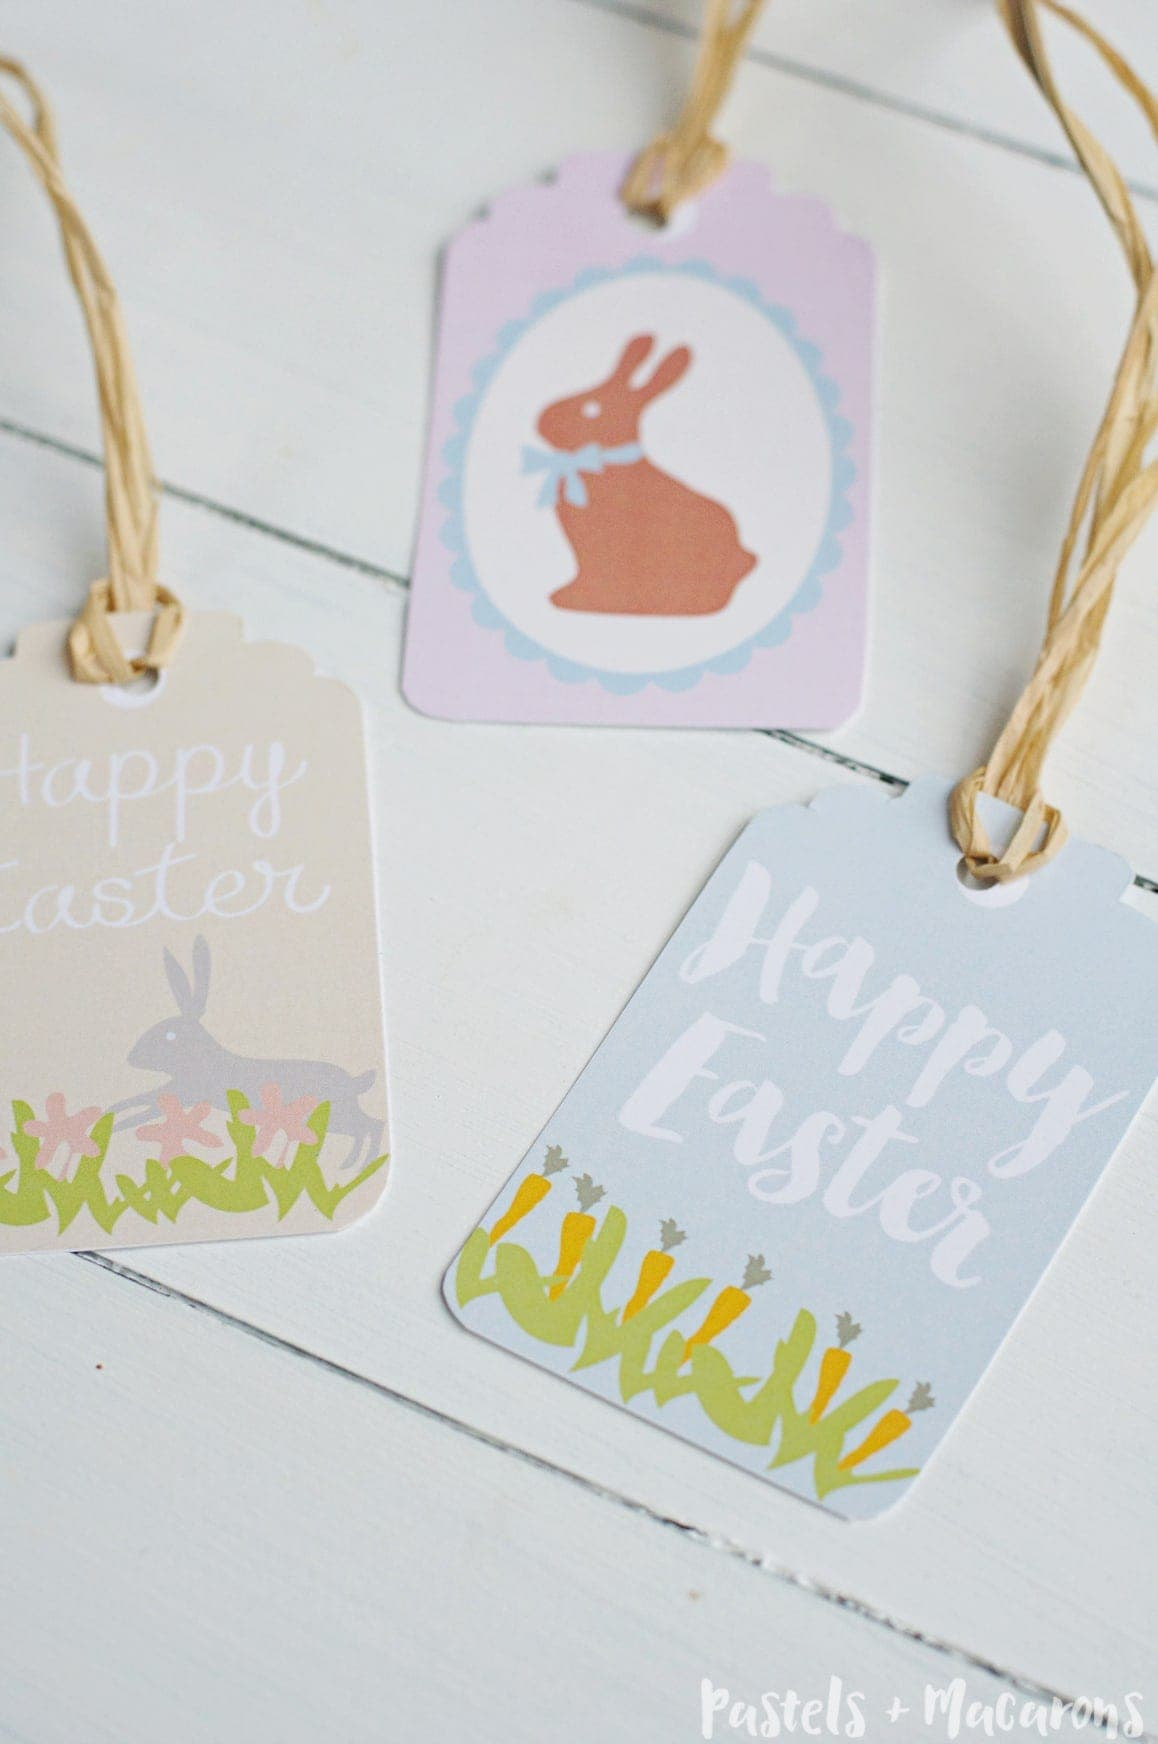 Free printable easter gift tags download your free printable easter gift tags for all your gifts this easter you get negle Images